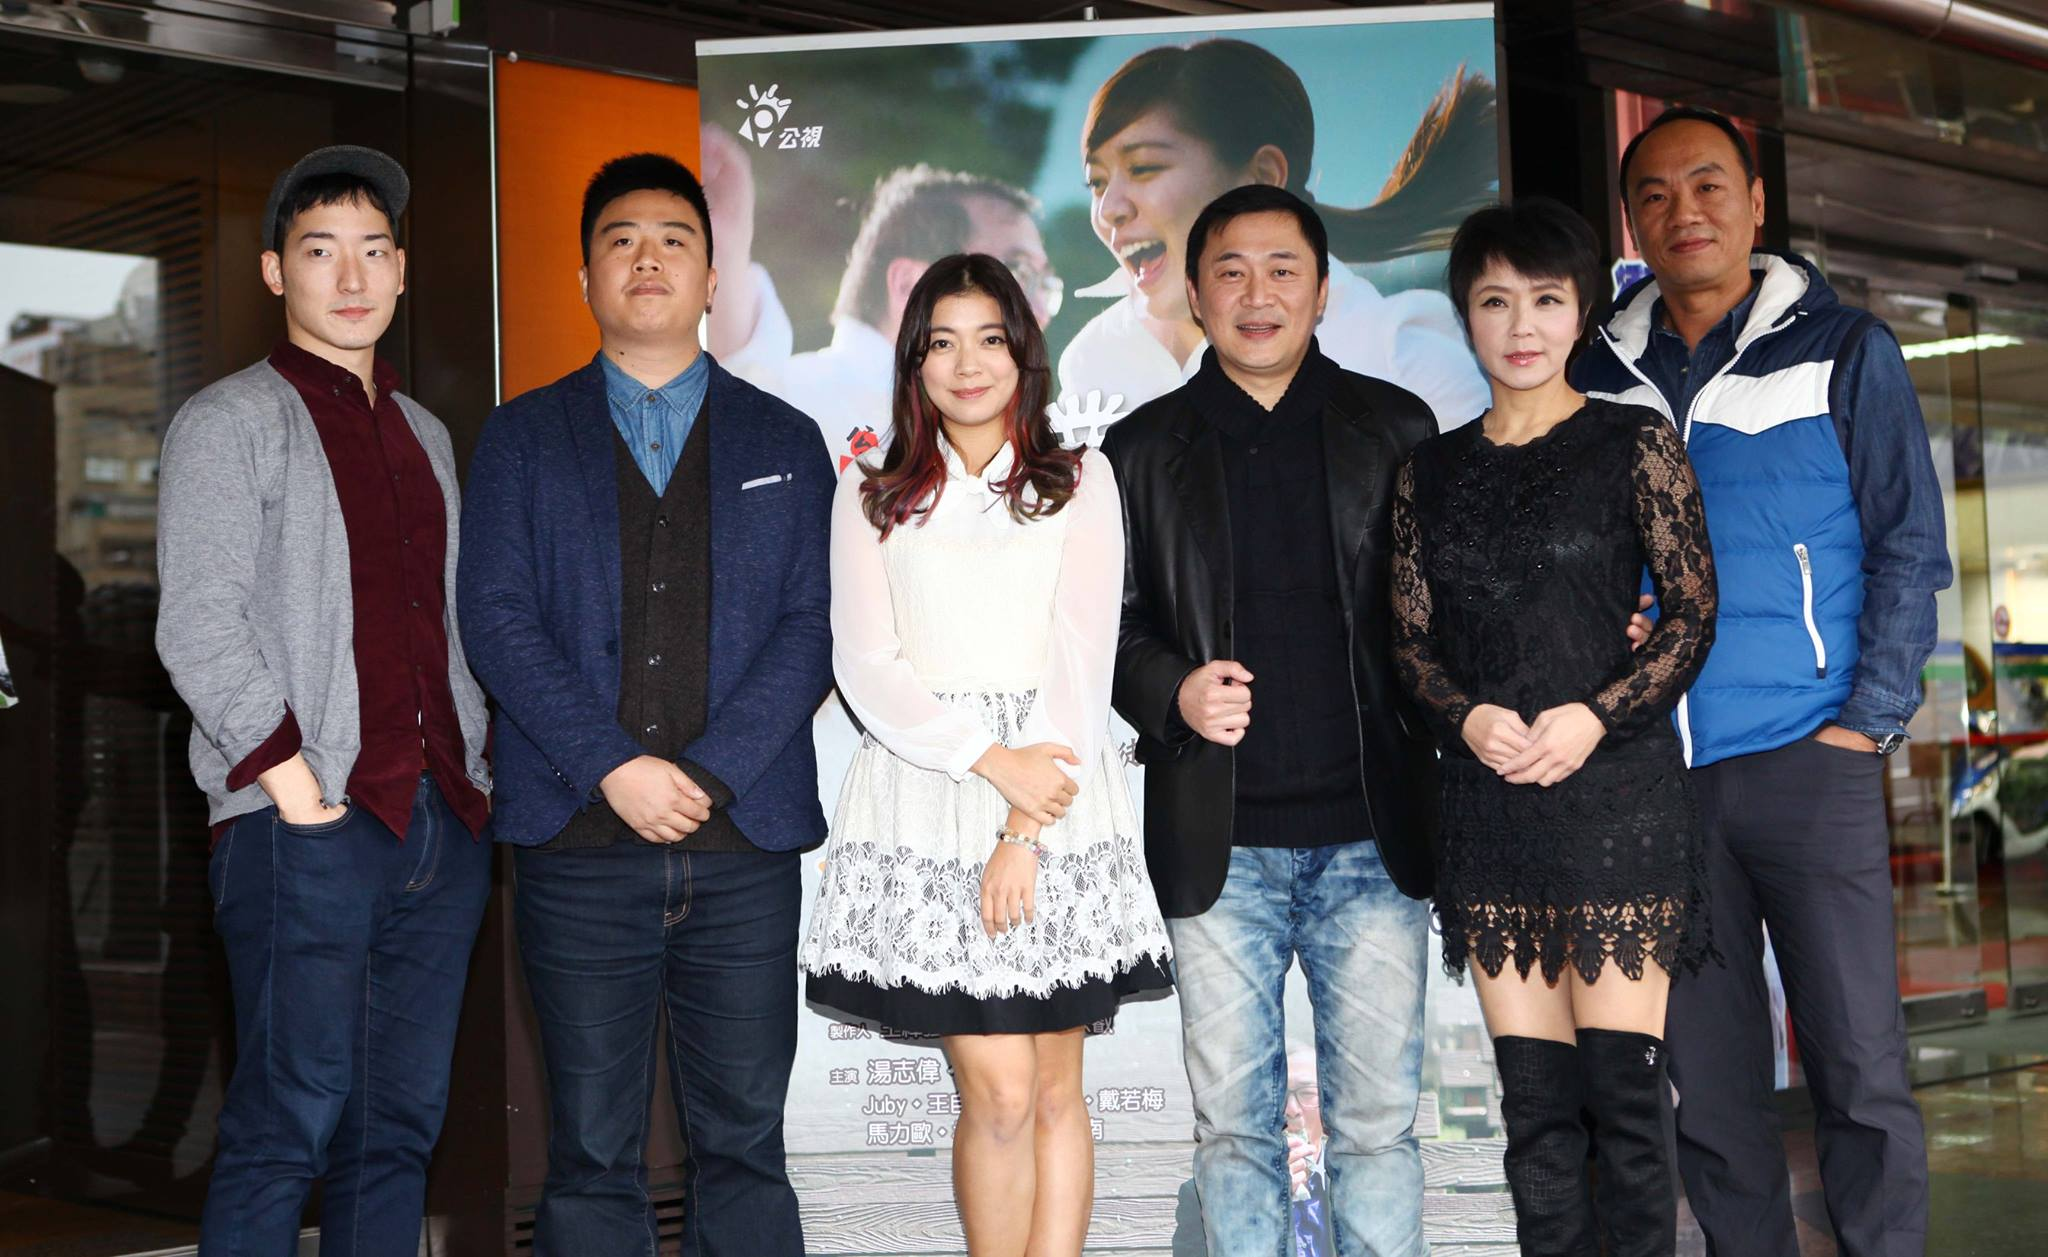 Chih-Wei Tang, Crystal Lin, Kerr Hsu, Tzu-Chiang Wang, Ray Wu, and Juby Kuo at an event for Loser Family (2016)